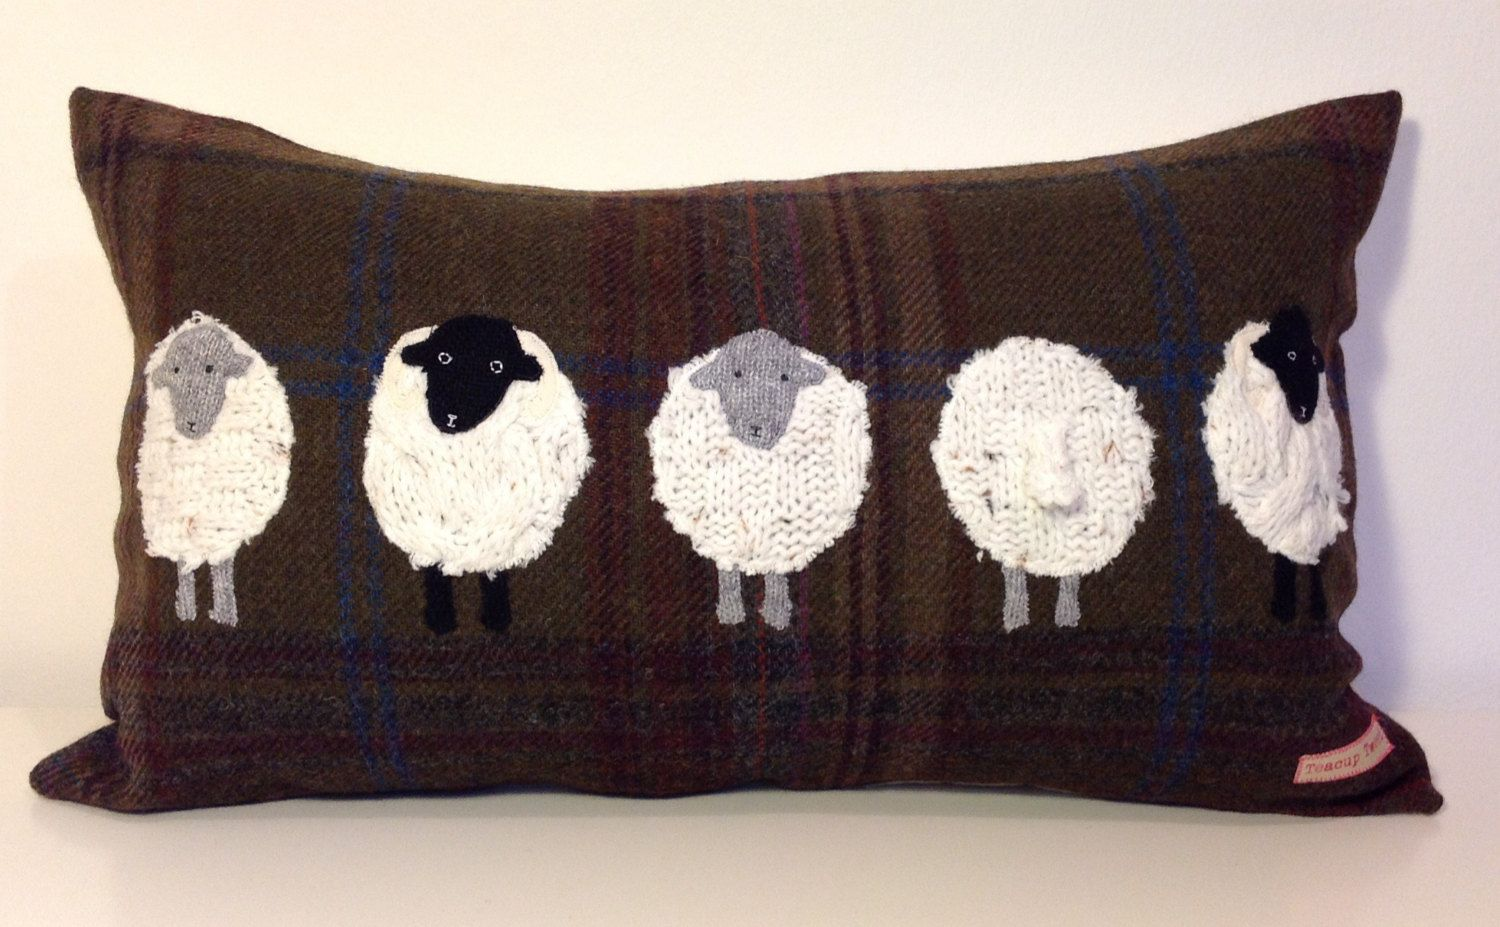 Cojines Originales 5 Sheep Appliqué Tweed Boudoir Cushion Cojines